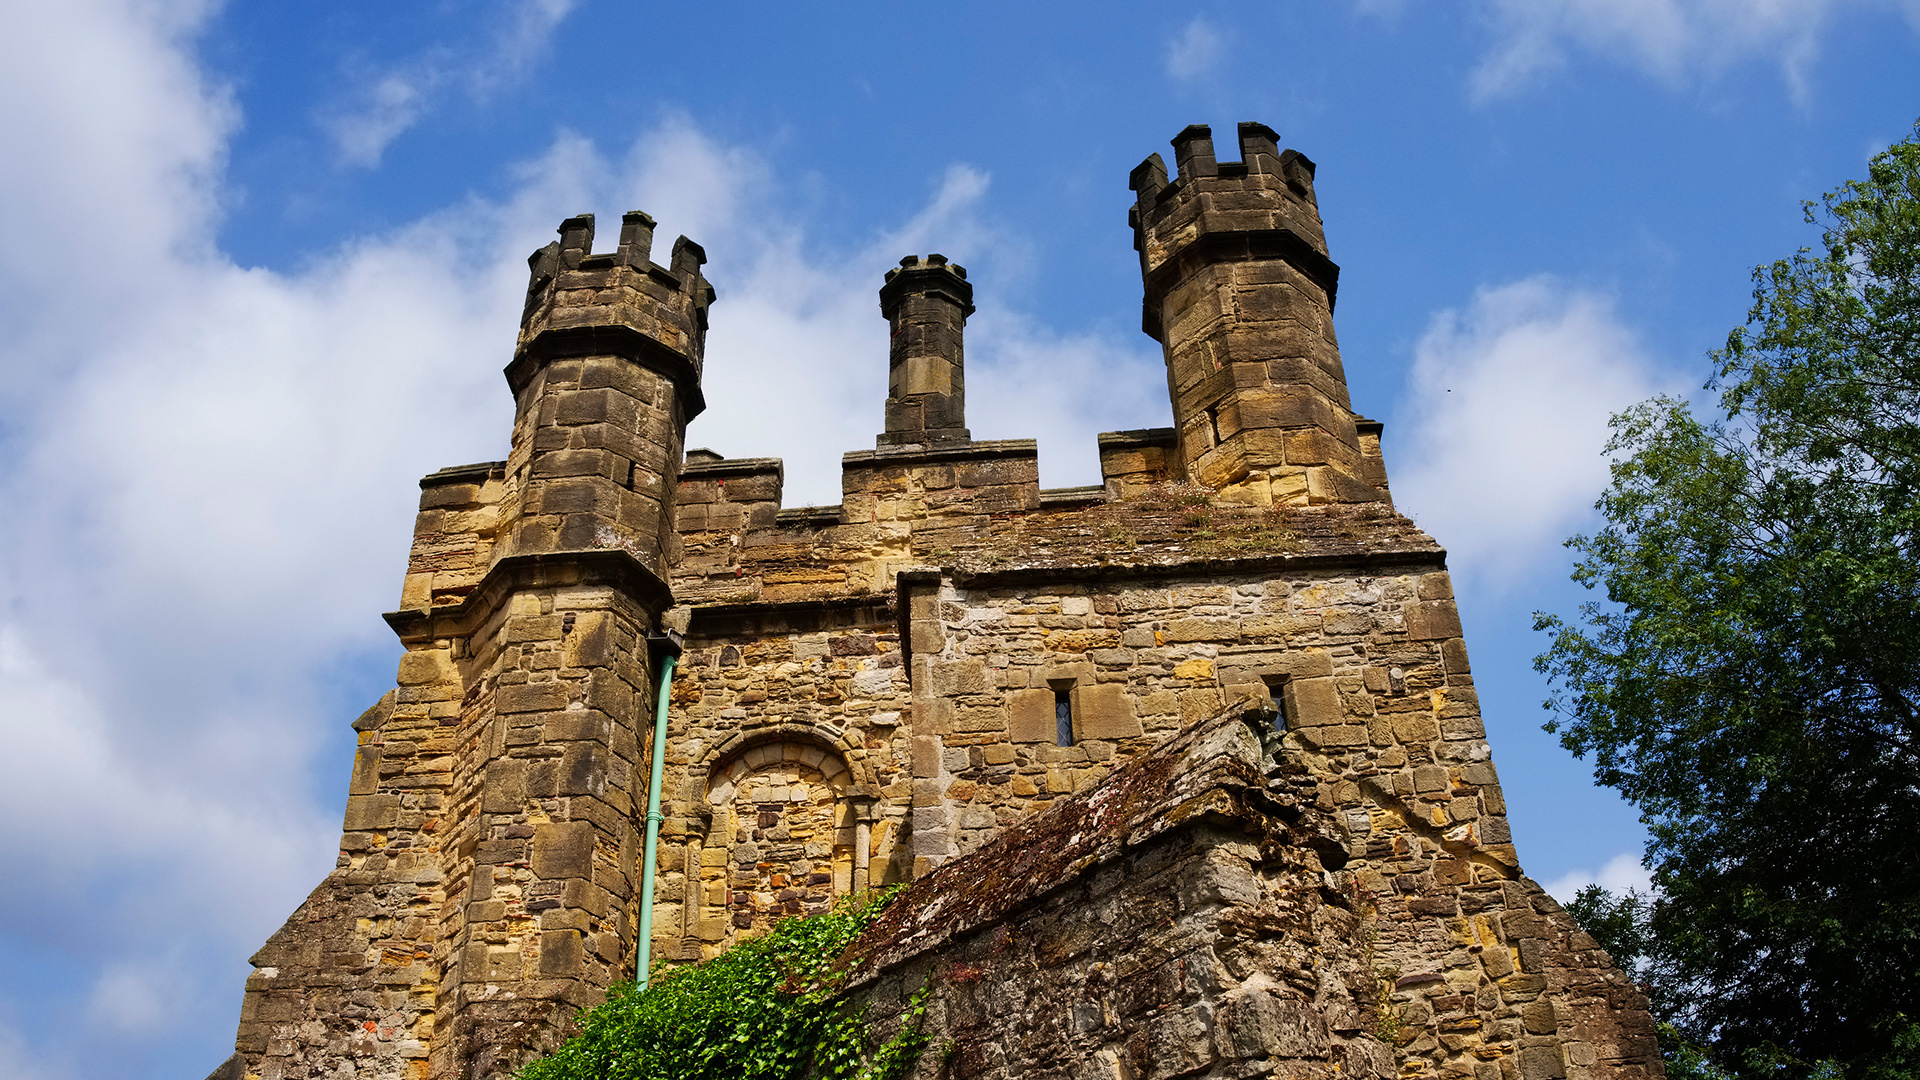 The iconic abbey in the town of Battle, built on the site of the battle of Hastings